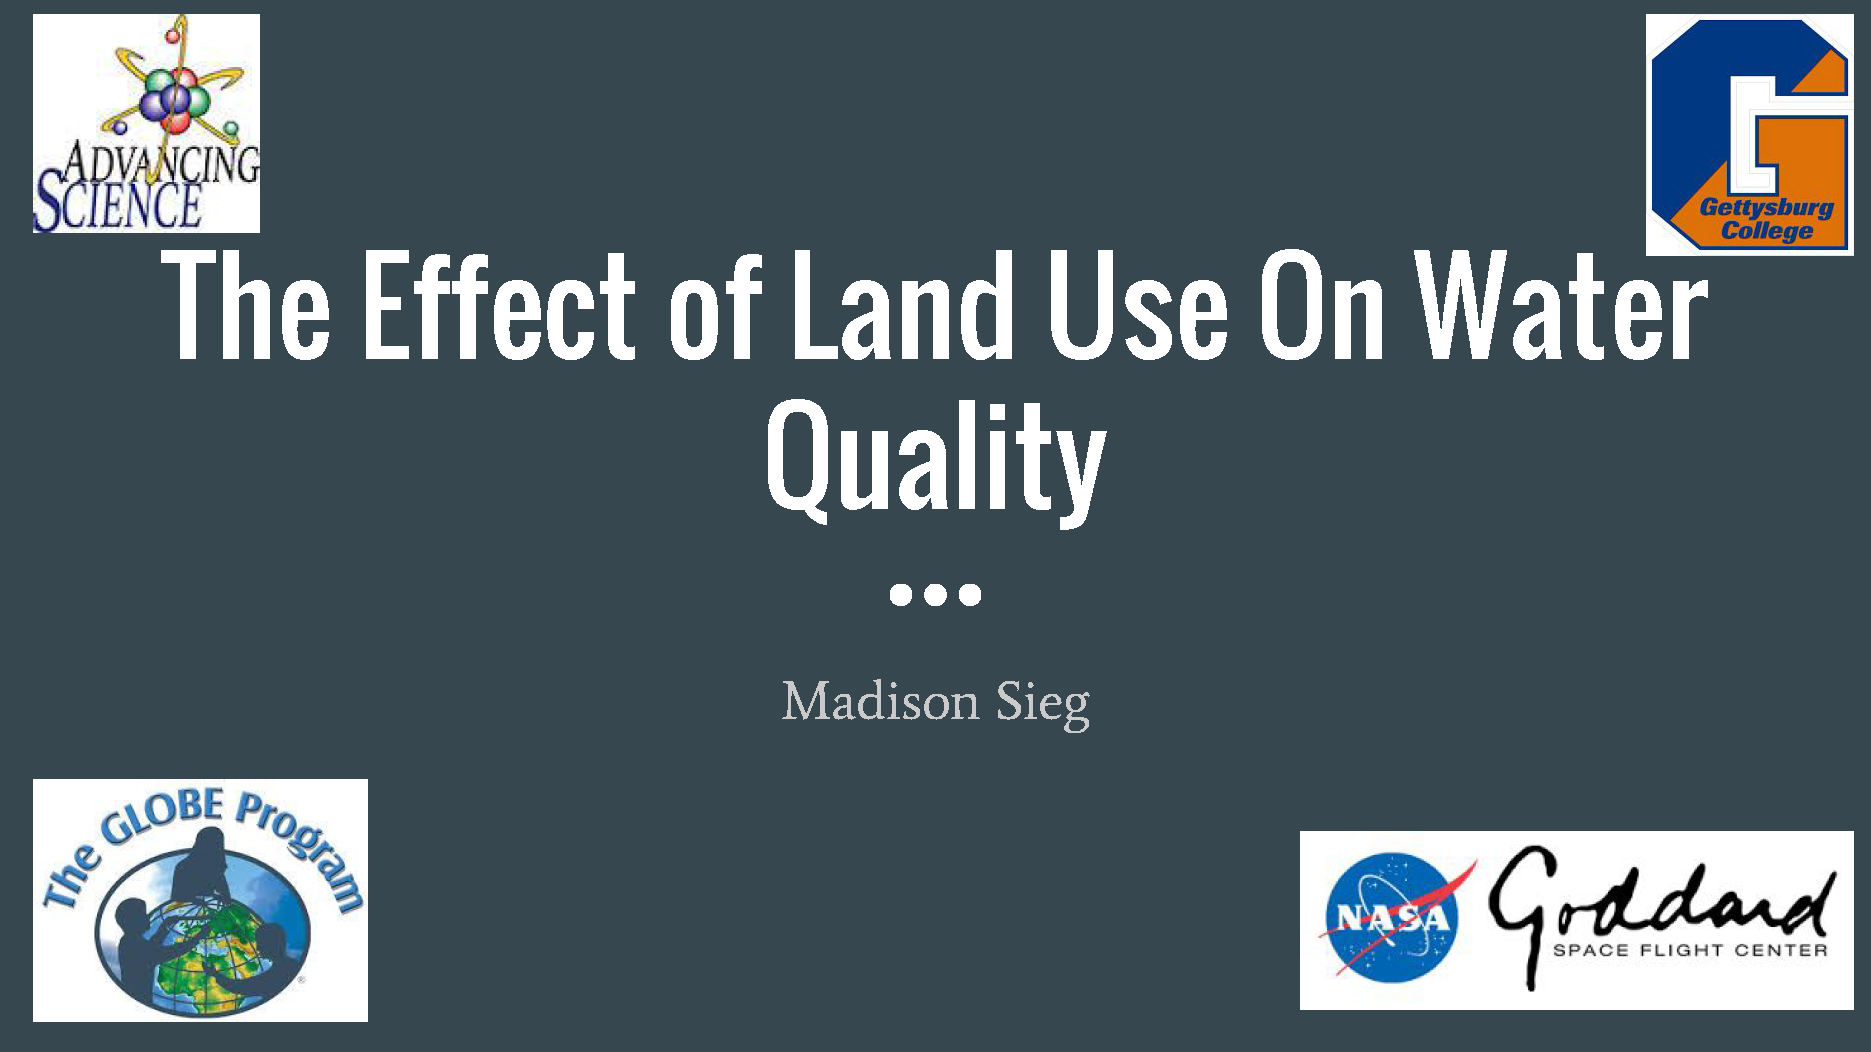 Effect of Land Use on Water Quality